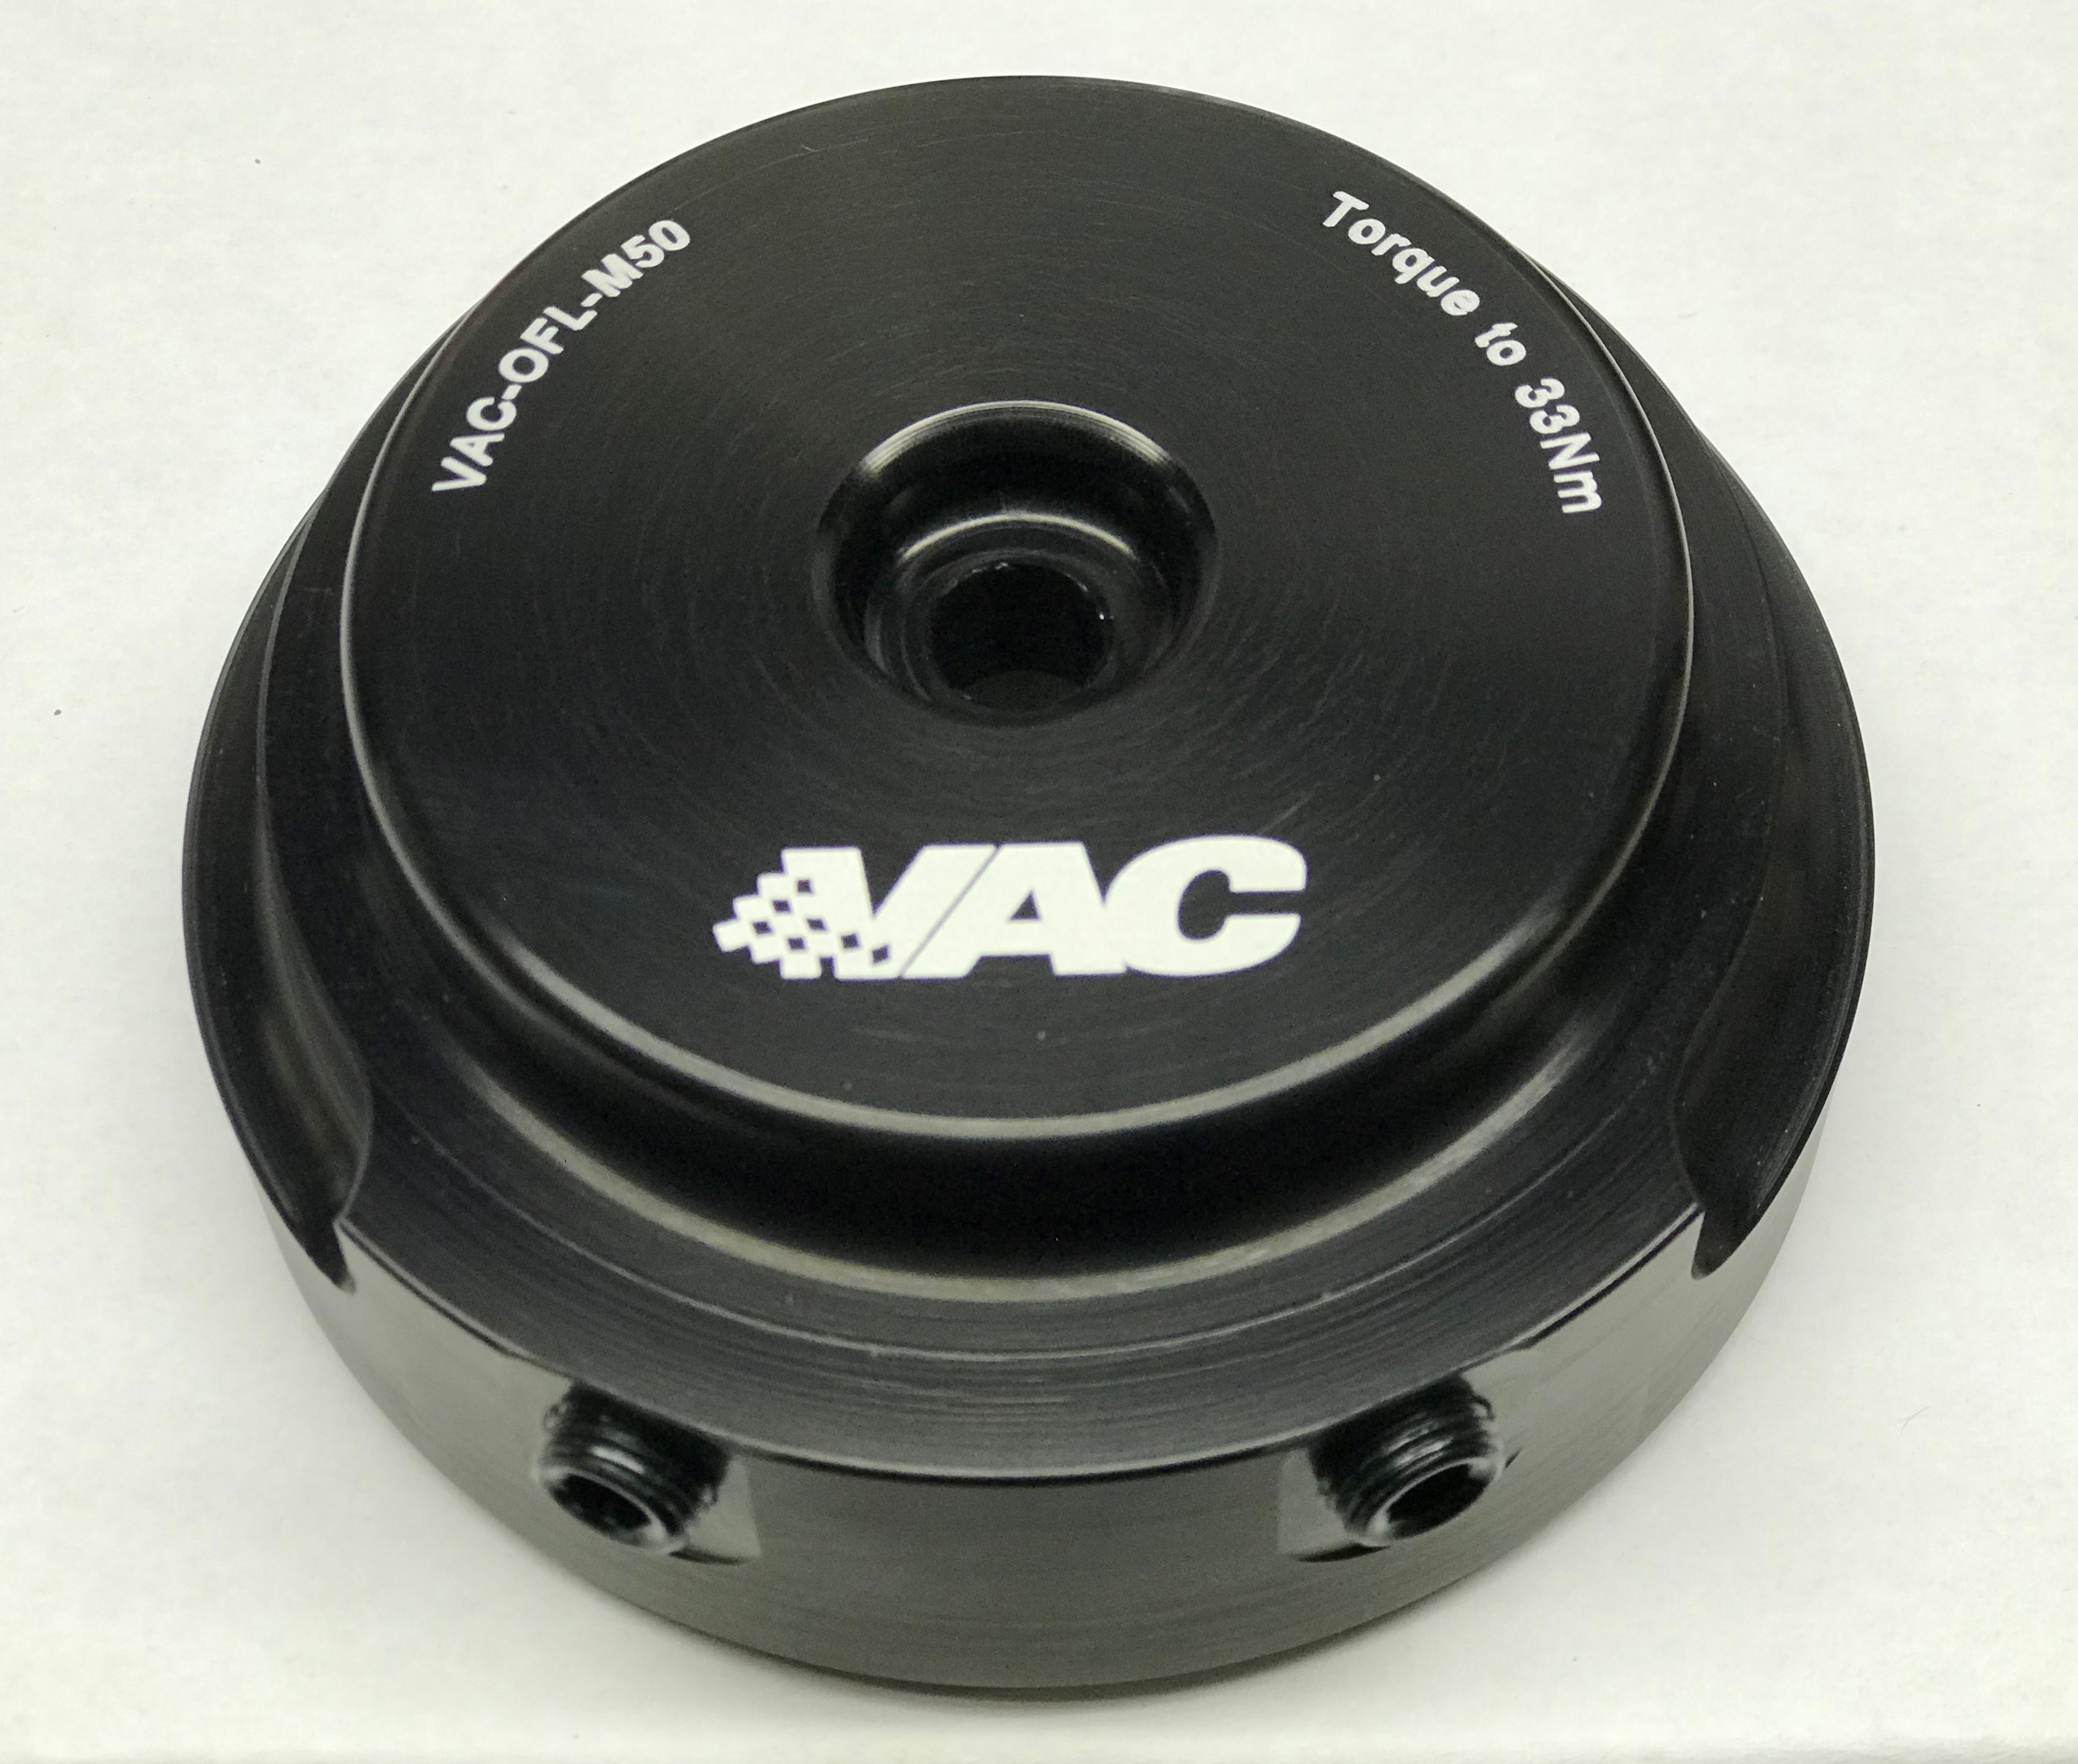 VAC Billet Oil Filter Lid w/Sensor Ports for BMW M50/M52/S50/S52/S50B30/S50B32/S54_MAIN